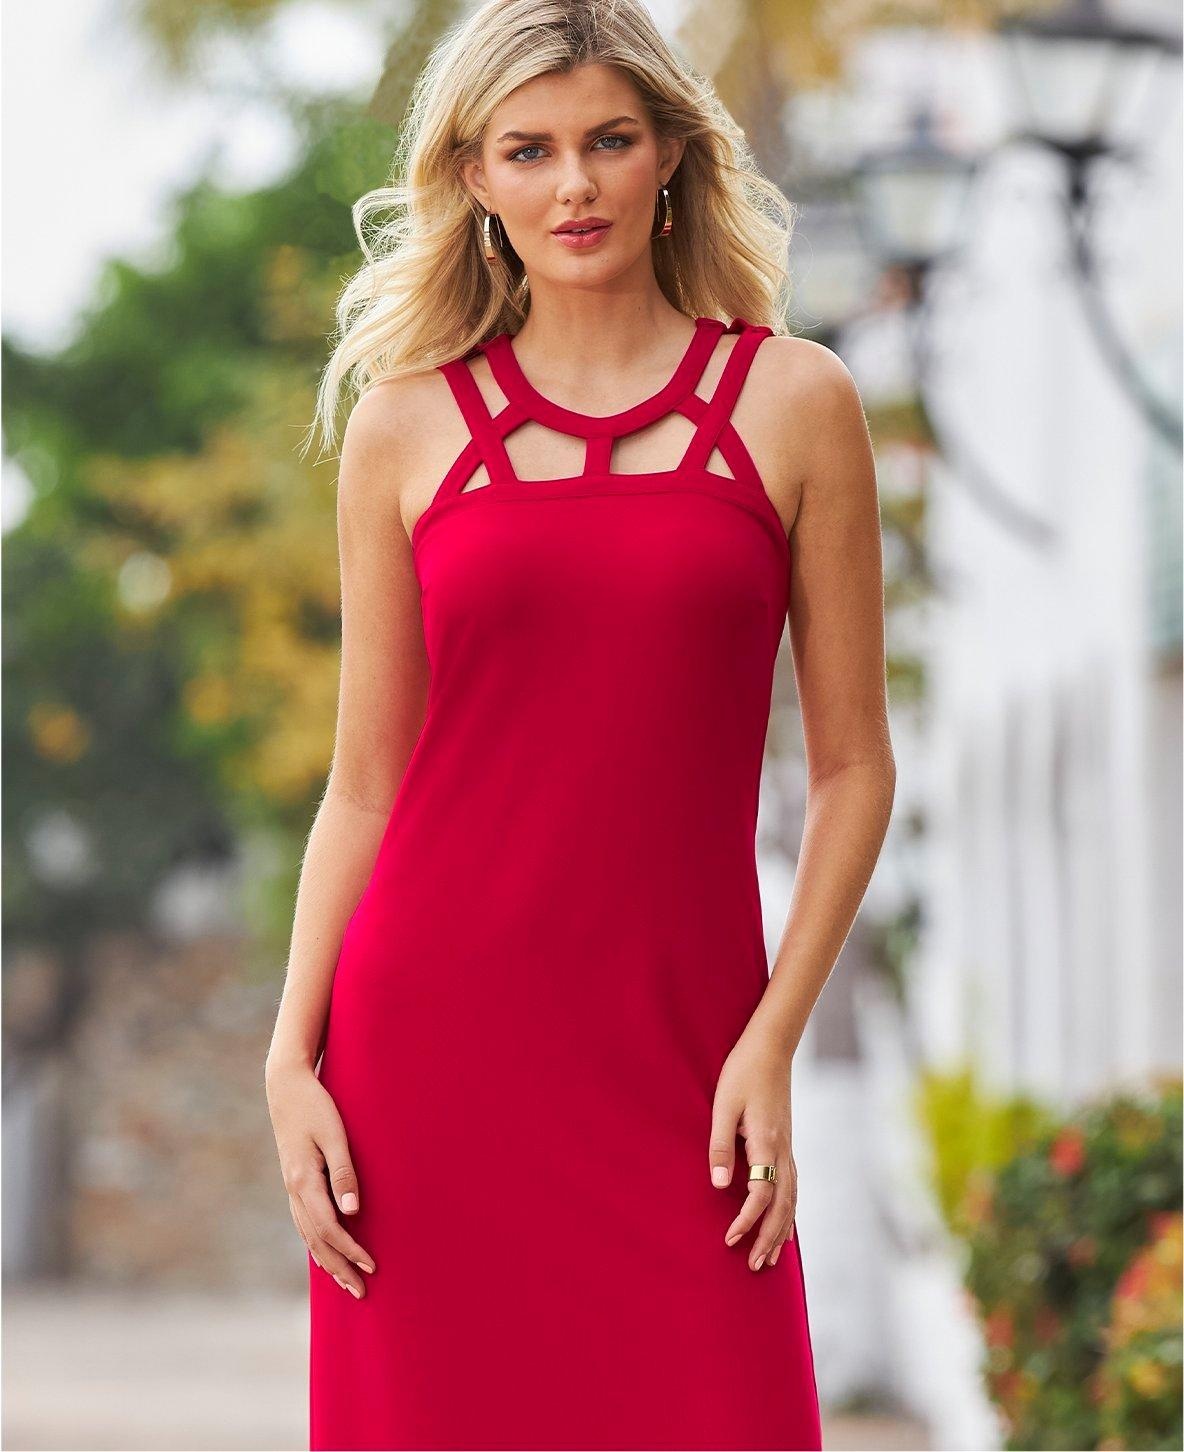 model wearing a red cutout sleeveless dress and gold hoop earrings.